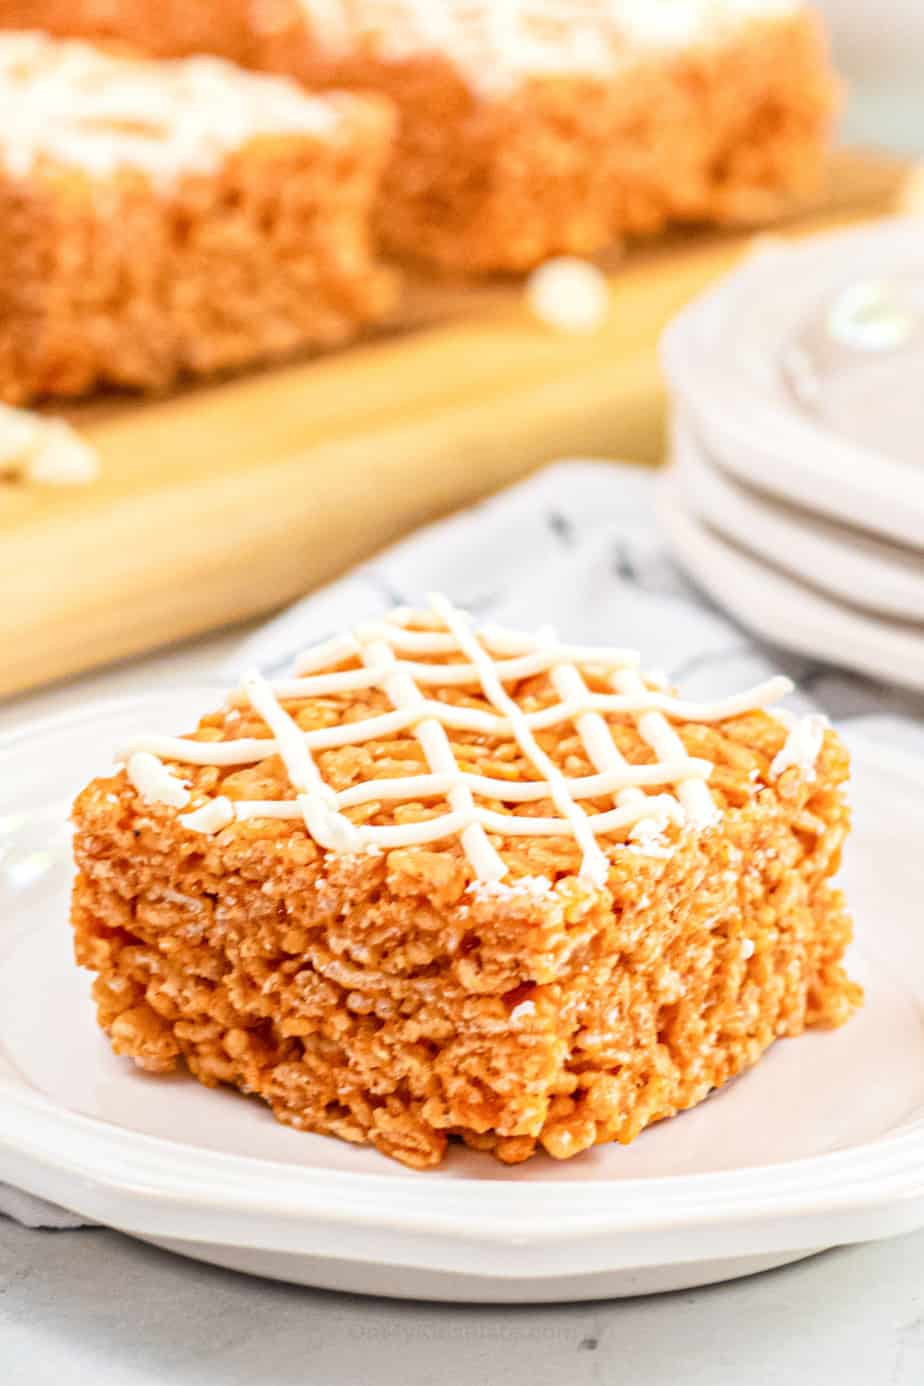 Pumpkin rice krispie treat drizzled with white chocolate on a plate up close